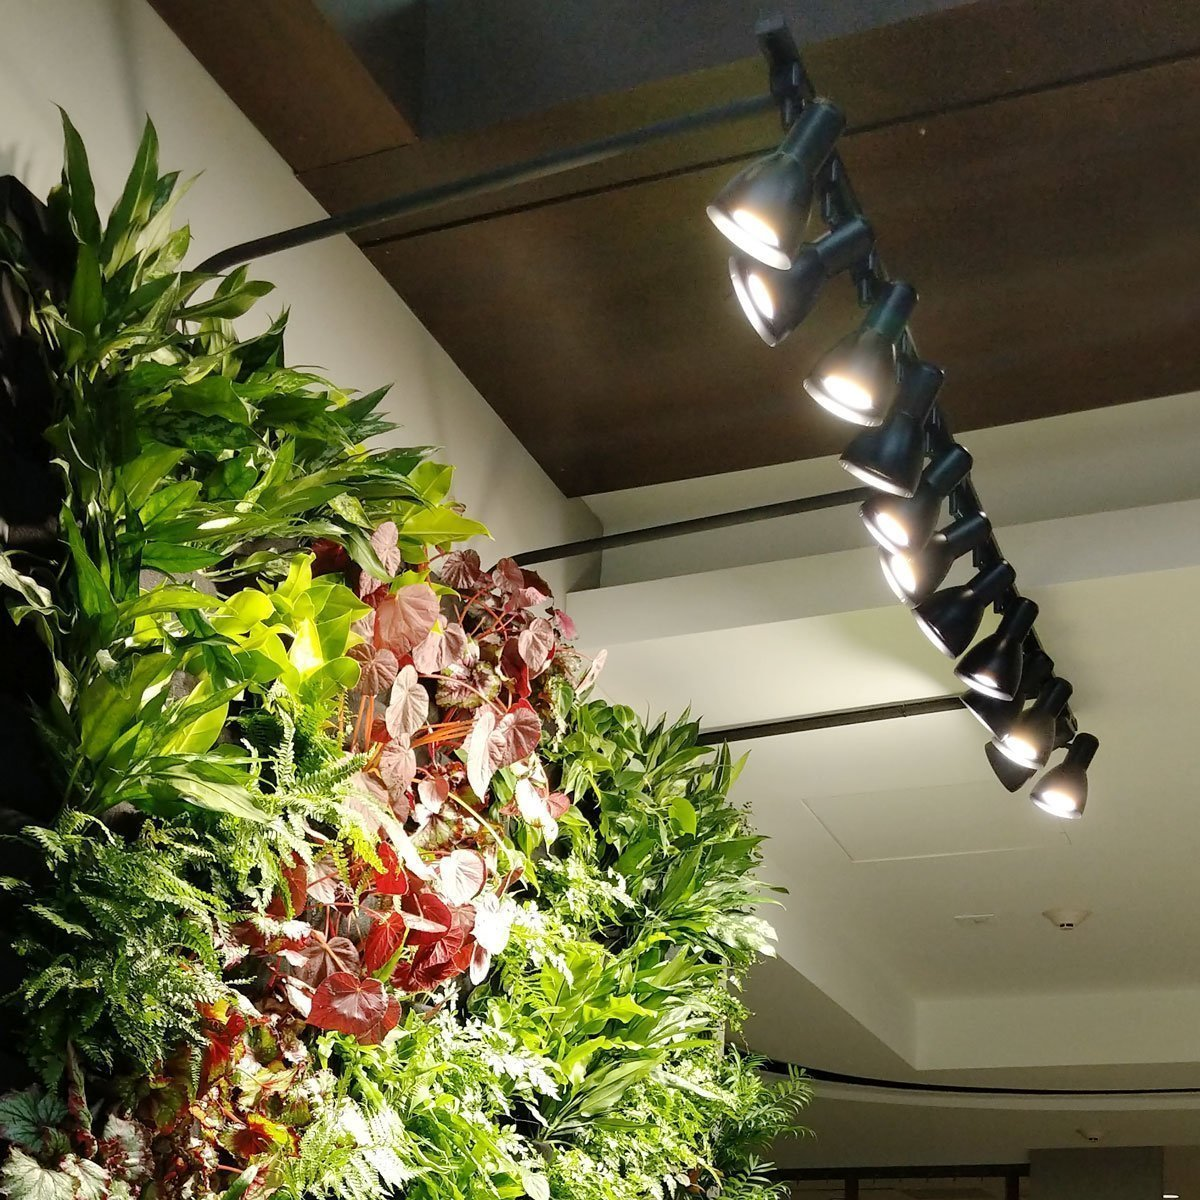 Lighting Guide For Living Walls Plants On Walls